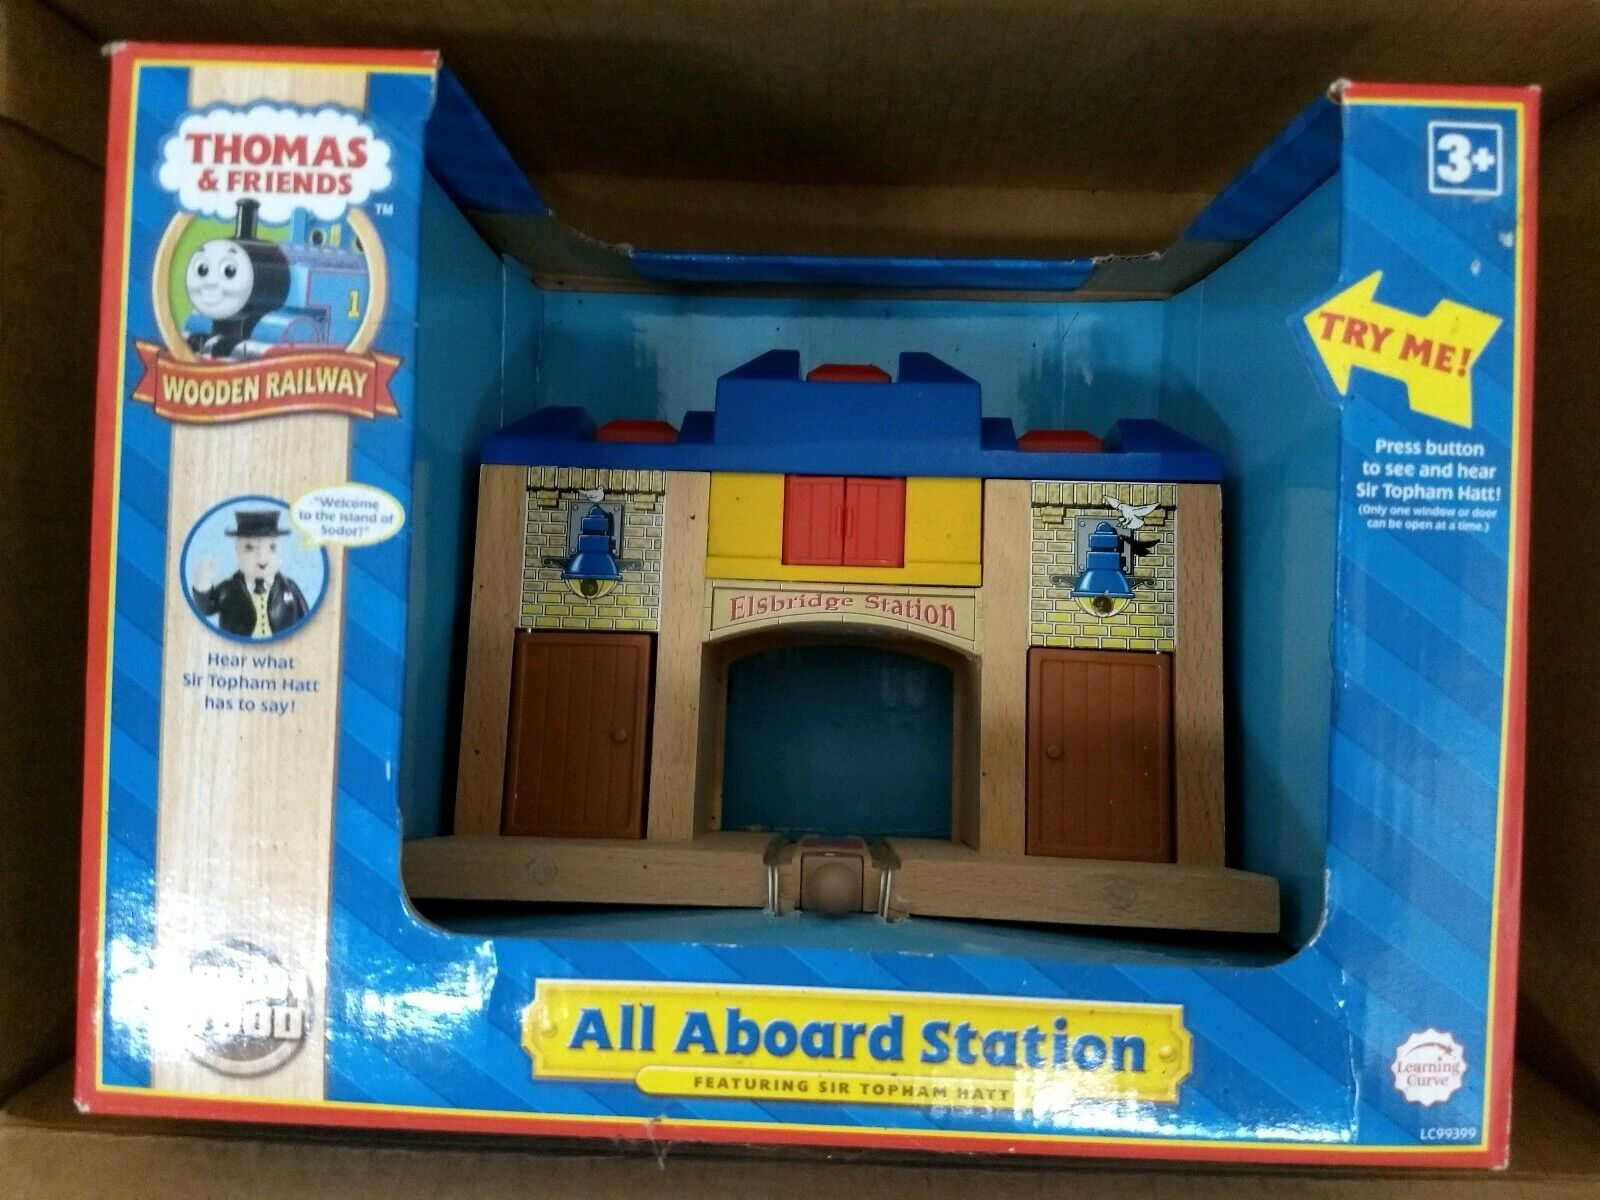 LC99399 Thomas and Friends All Aboard Station New In Box